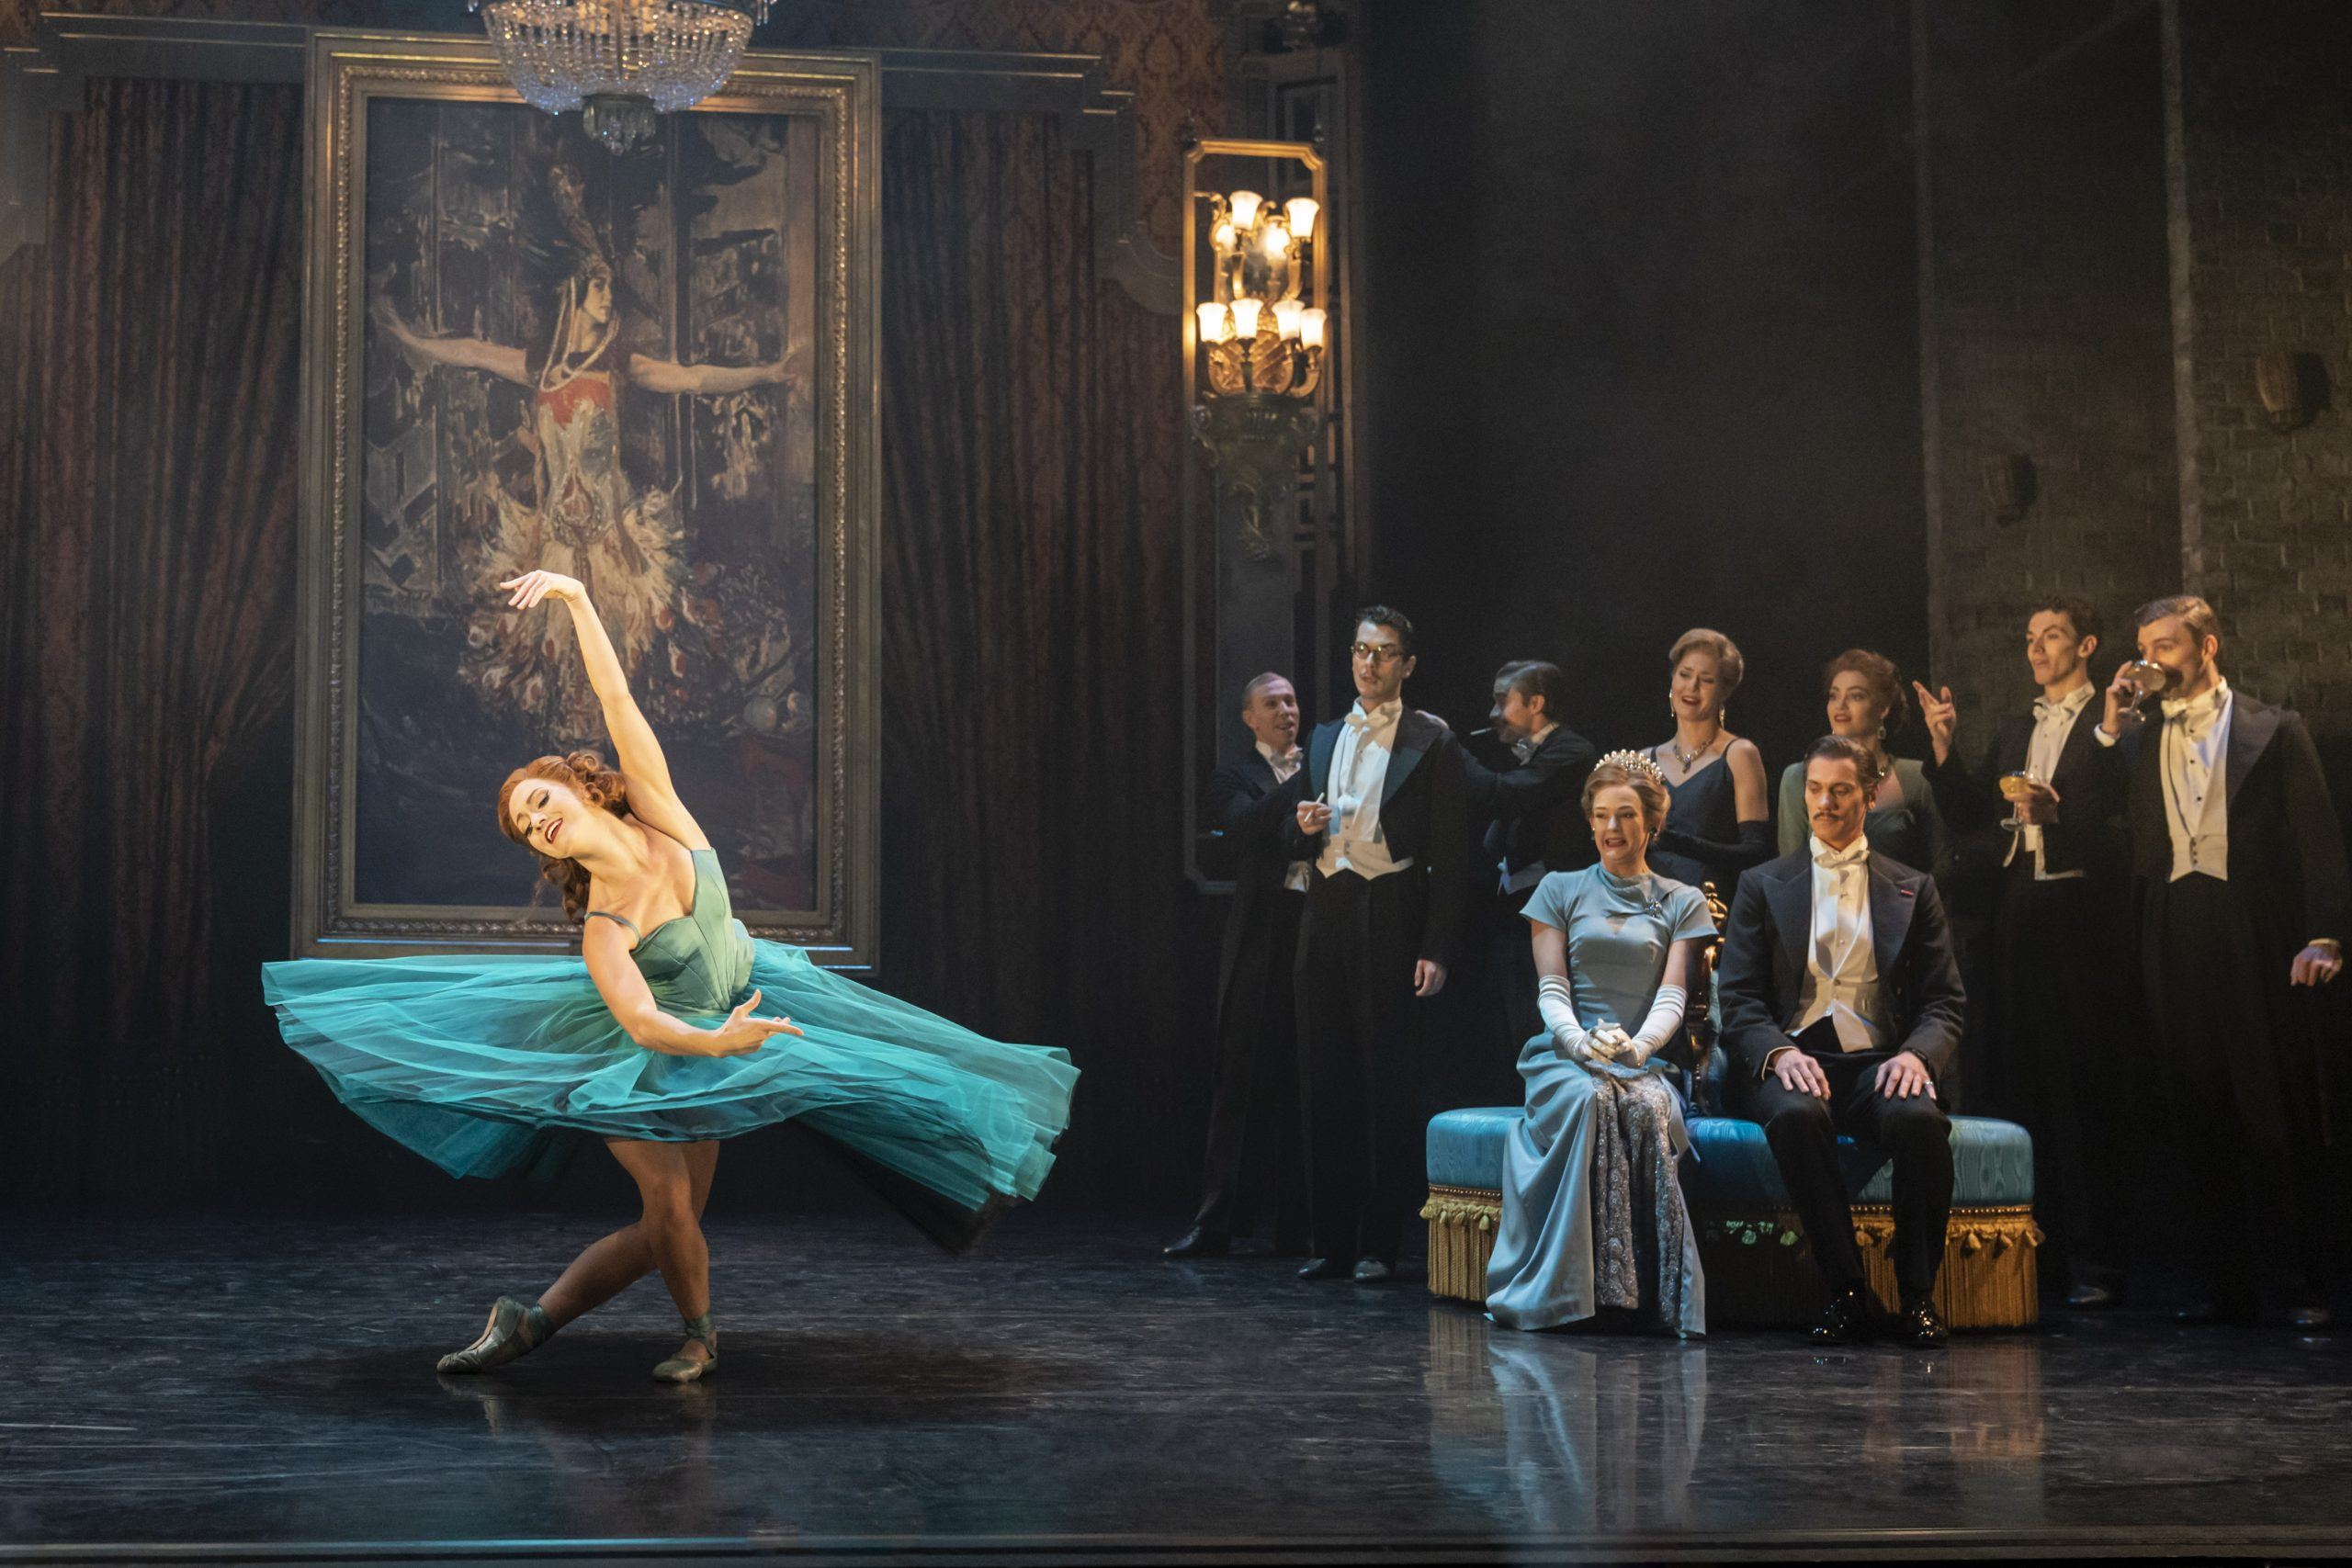 Matthew Bourne's production of The Red Shoes. Ashley Shaw as Victoria Page and New Adventures Company. Photo by Johan Persson.